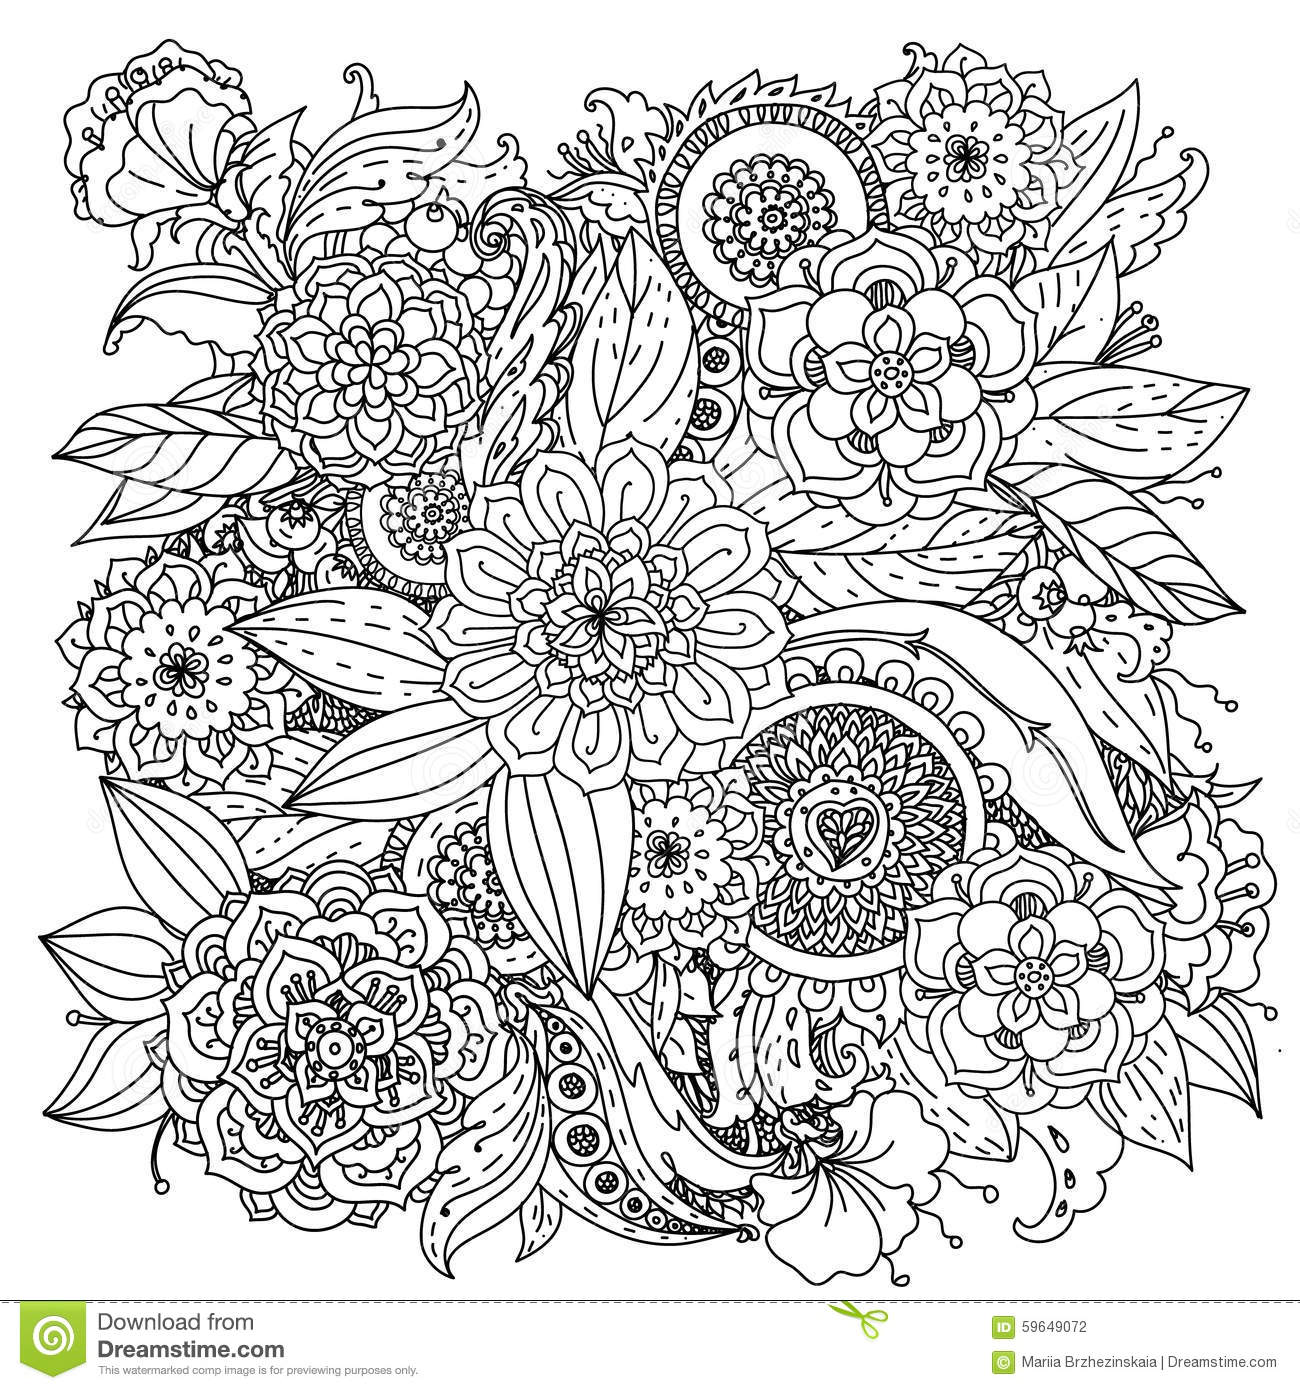 Co co coloring sheets free for kids - Co Co Co Coloring Book Spiderman Spiderman 3 Coloring Pages Free Coloring Pages For Kids